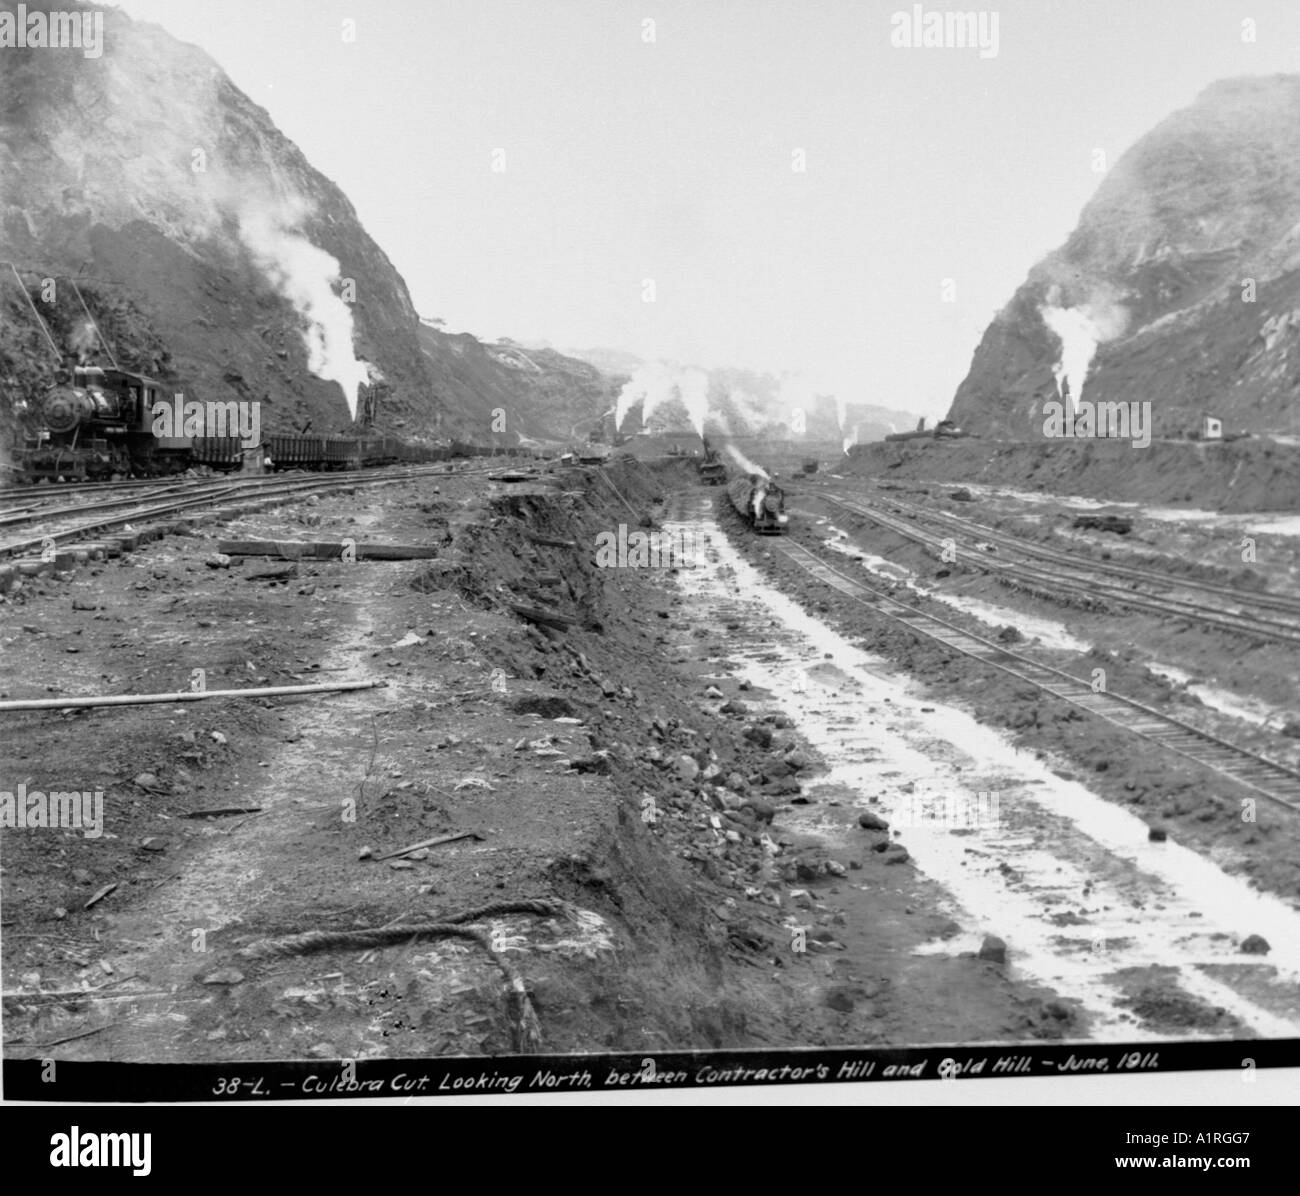 Culebra Cut Looking North Between Contractor s Hill and Gold Hill June 1911 - Stock Image